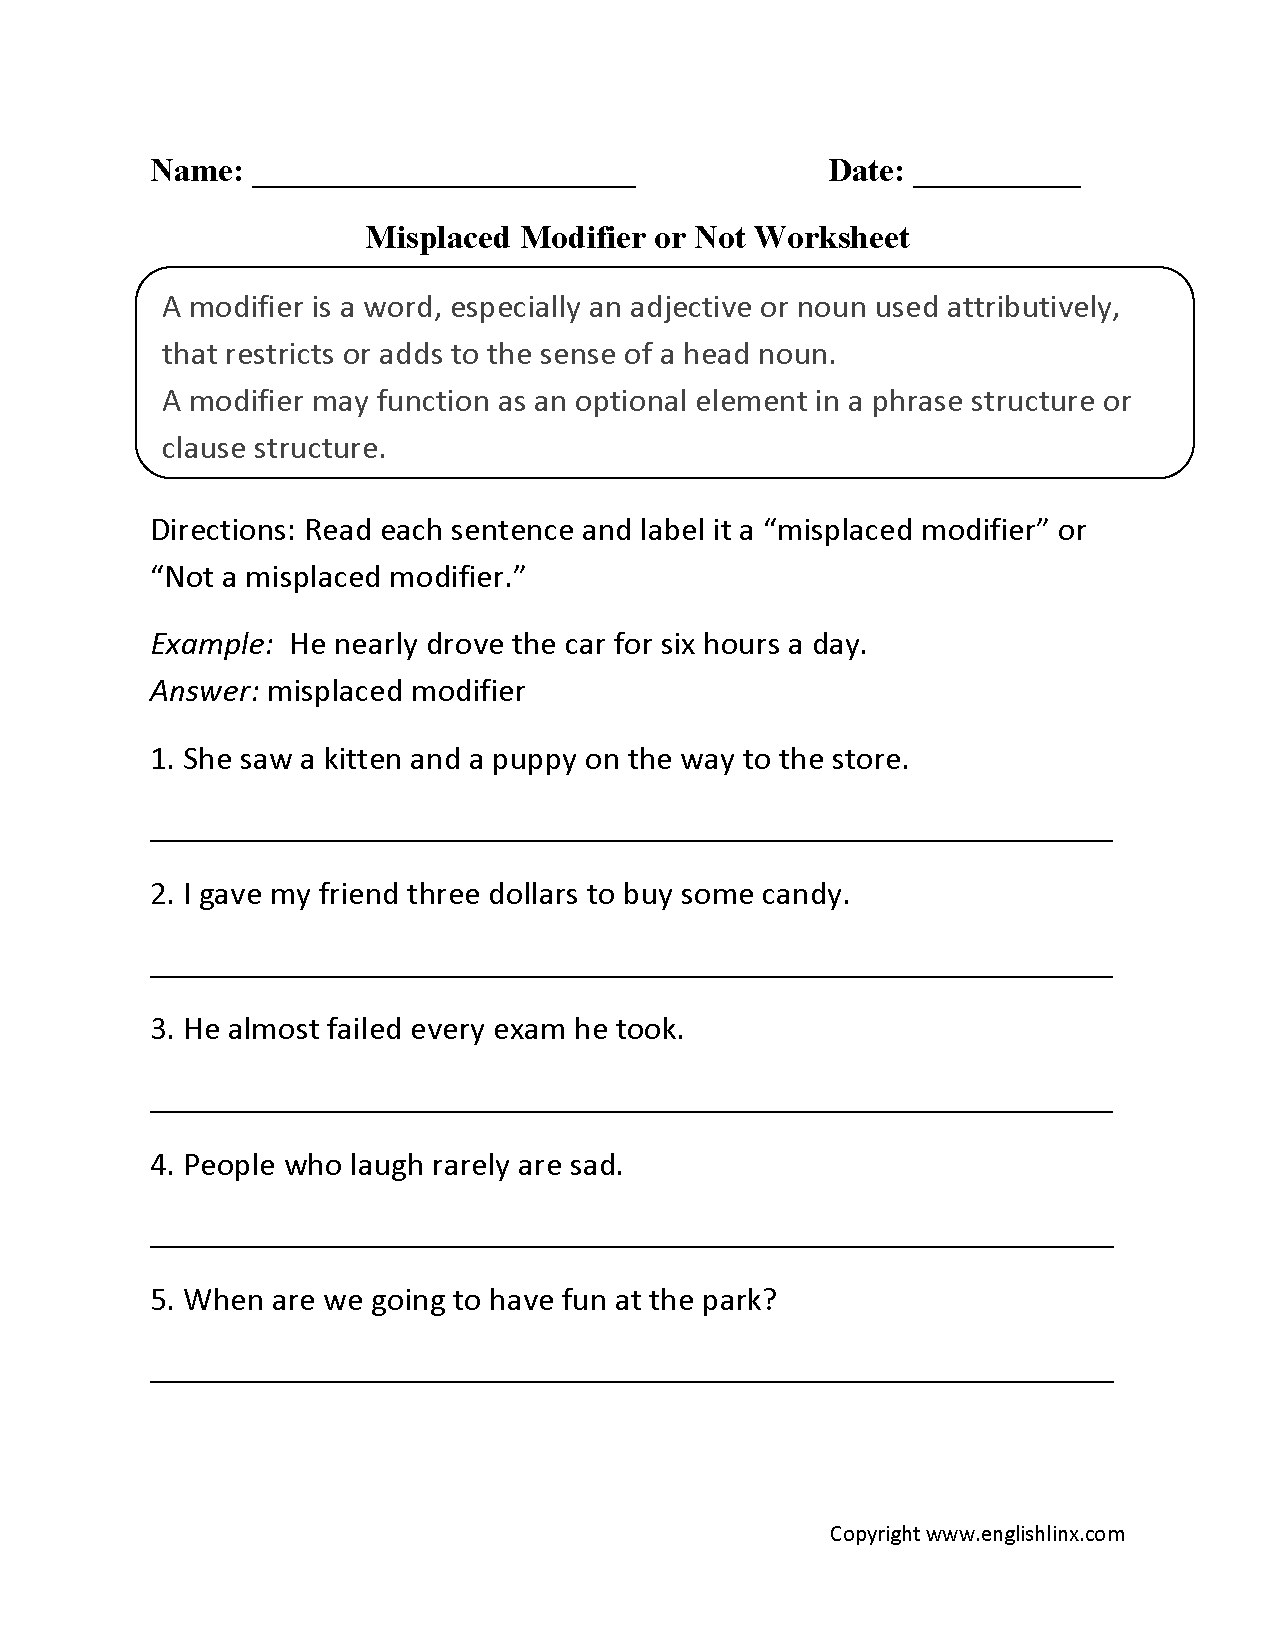 Misplaced Modifier Worksheet Lesupercoin Printables Worksheets